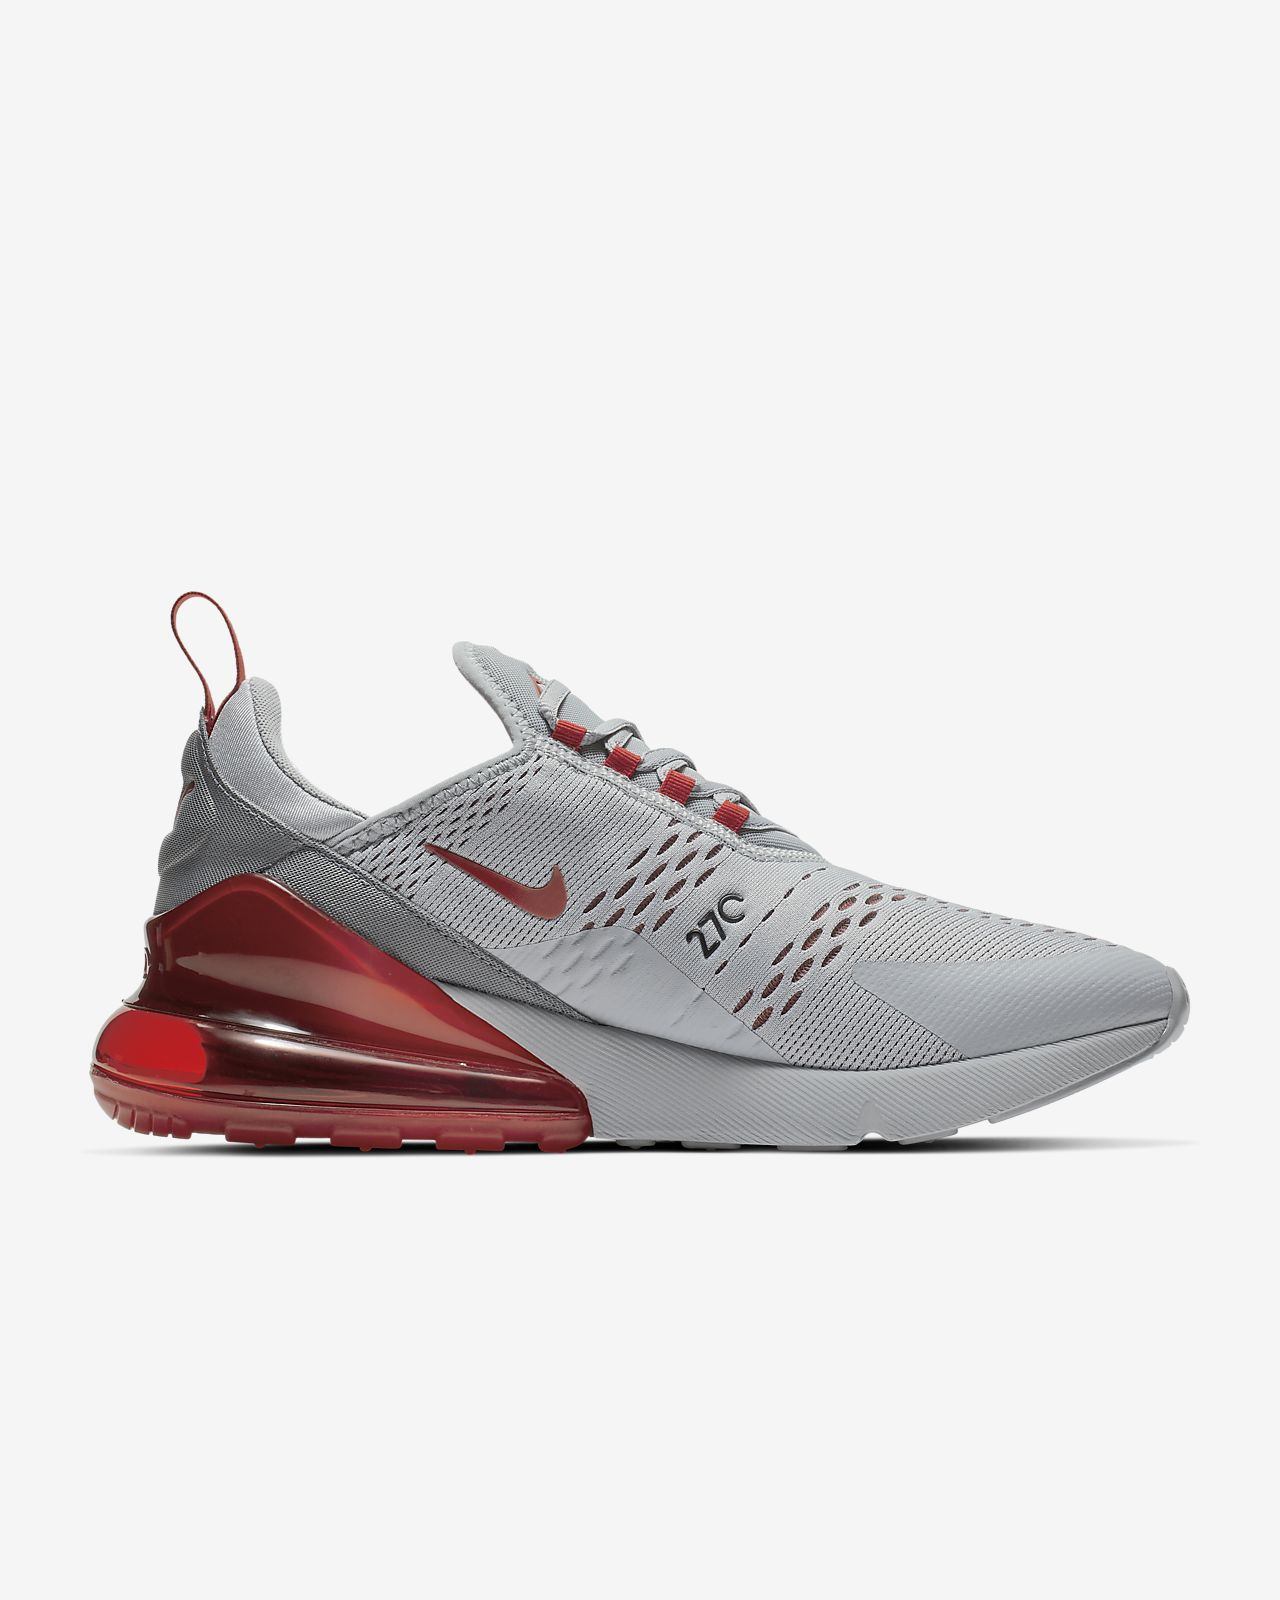 lowest price 0f46e ebae3 ... Nike Air Max 270 Men s Shoe